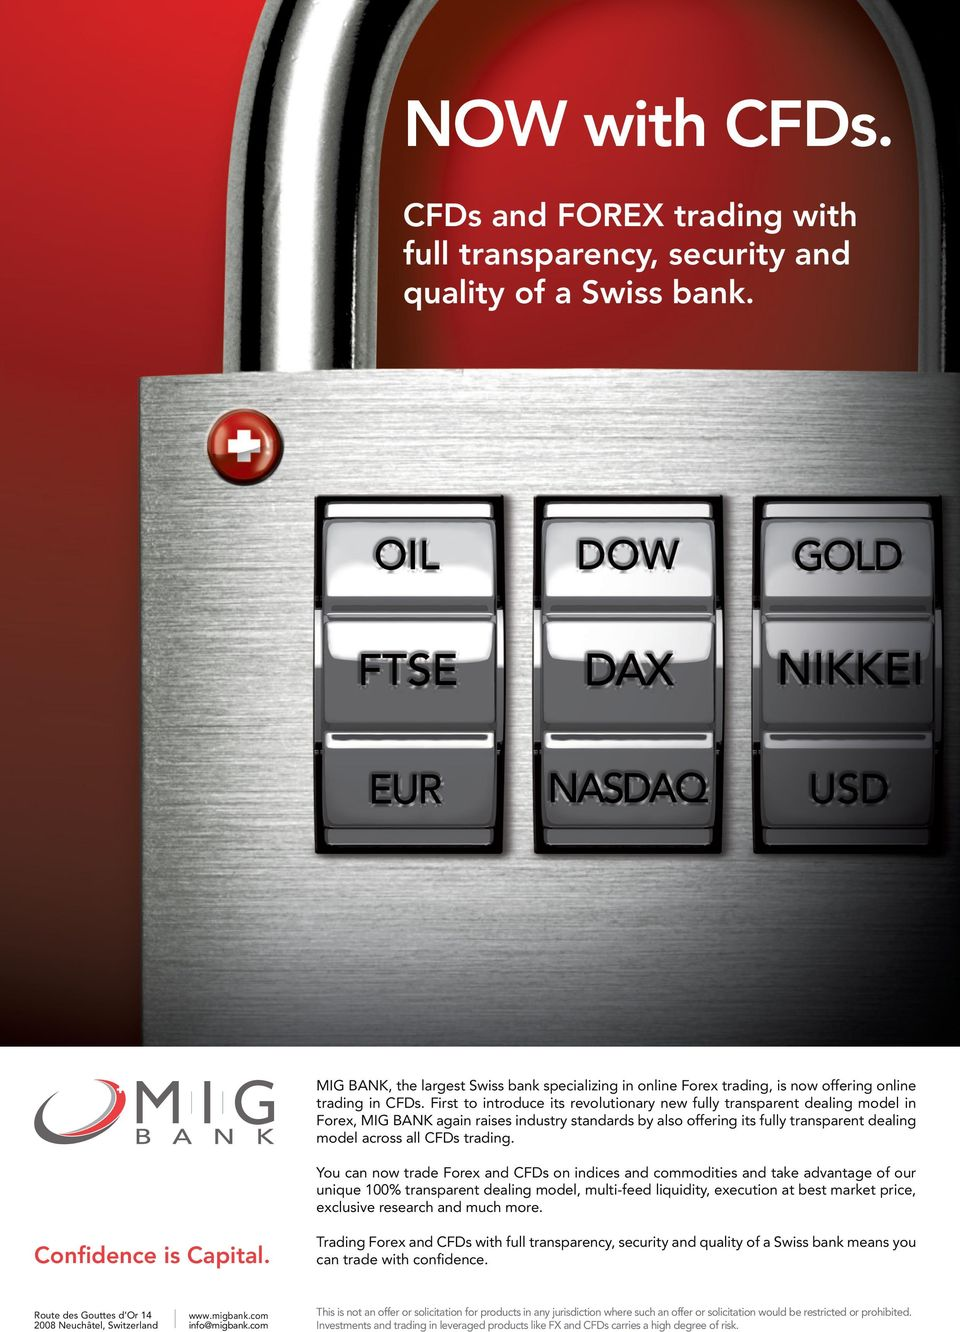 First to introduce its revolutionary new fully transparent dealing model in Forex, MIG BANK again raises industry standards by also offering its fully transparent dealing model across all CFDs